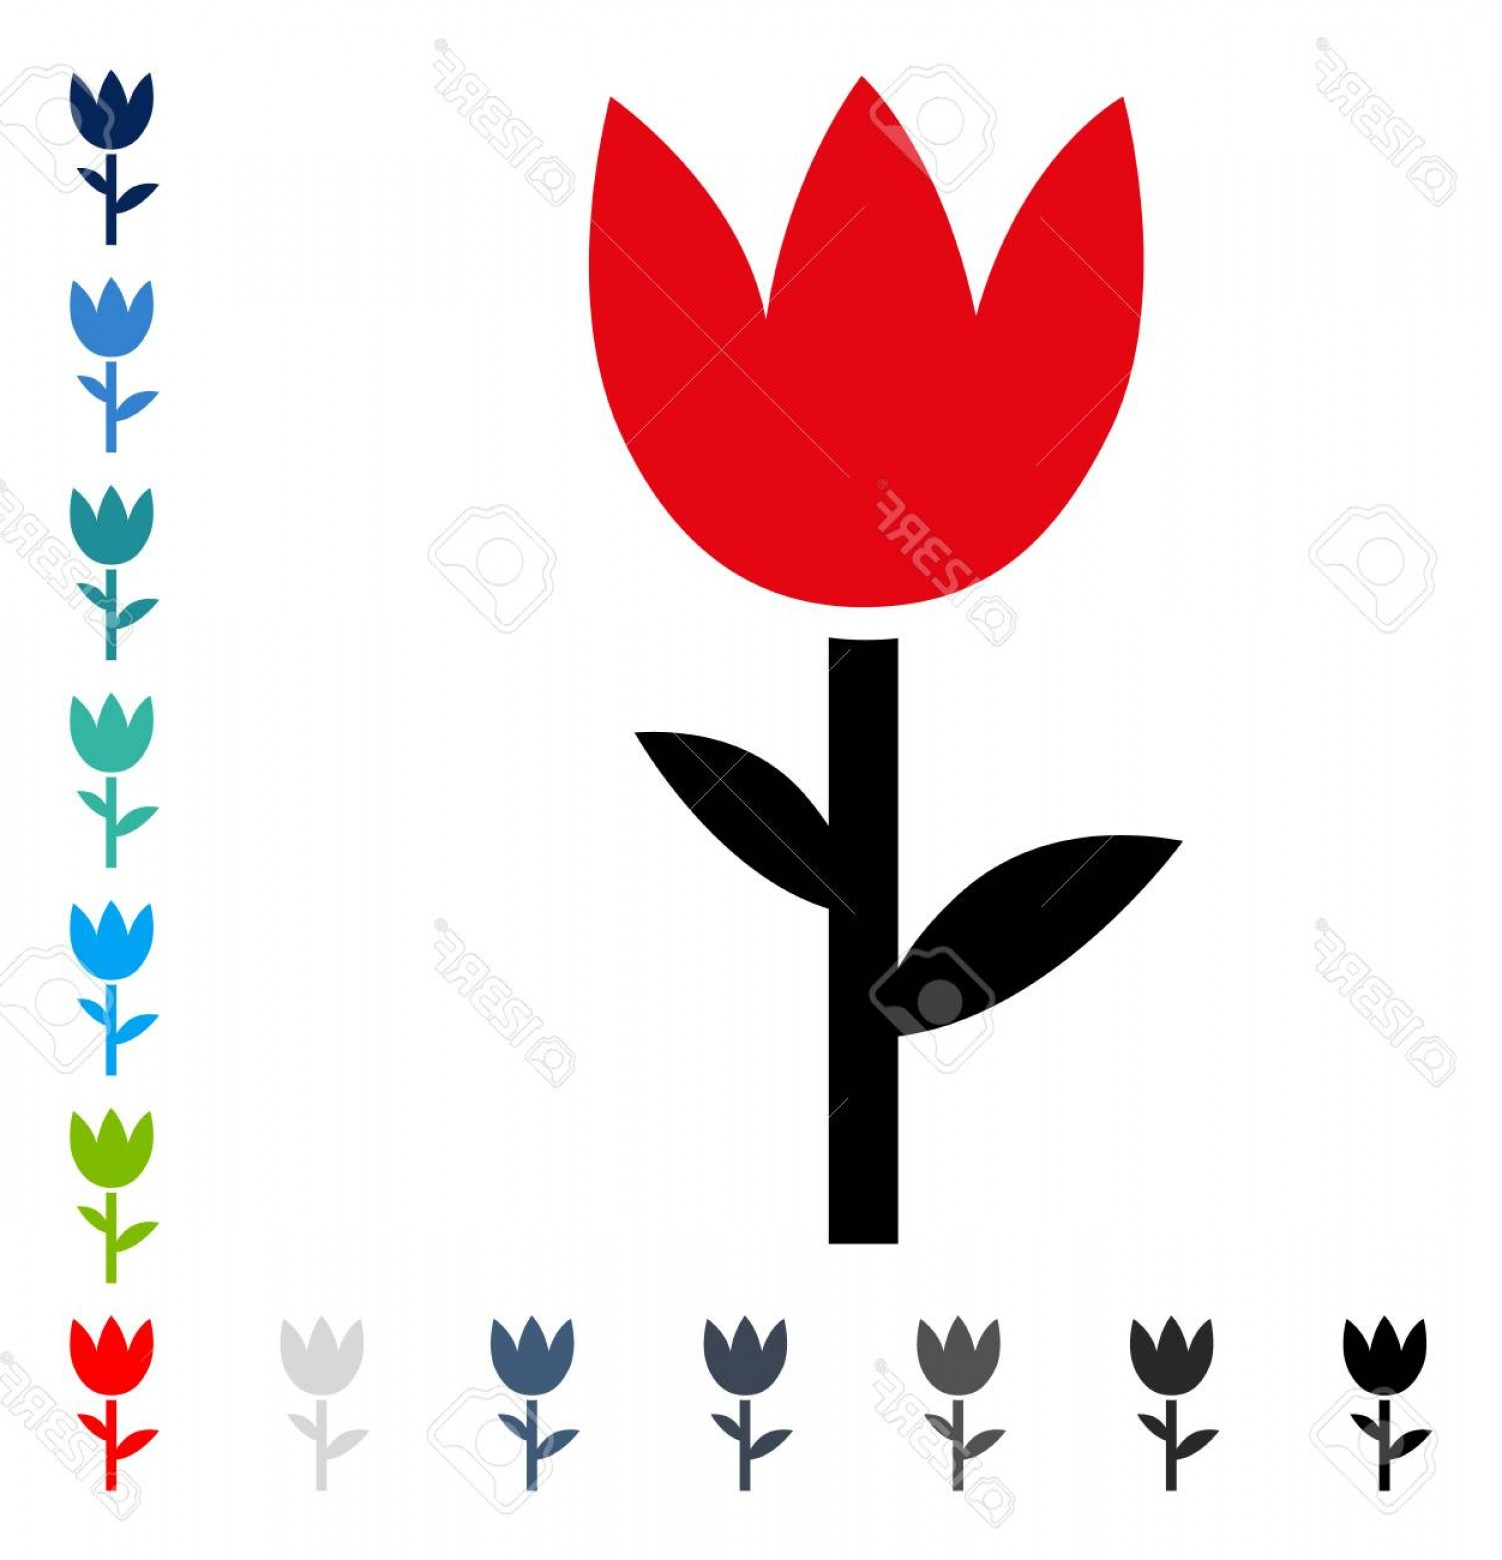 Tulip Icon Vector: Photostock Vector Tulip Icon Vector Illustration Style Is A Flat Iconic Symbol In Some Color Versions